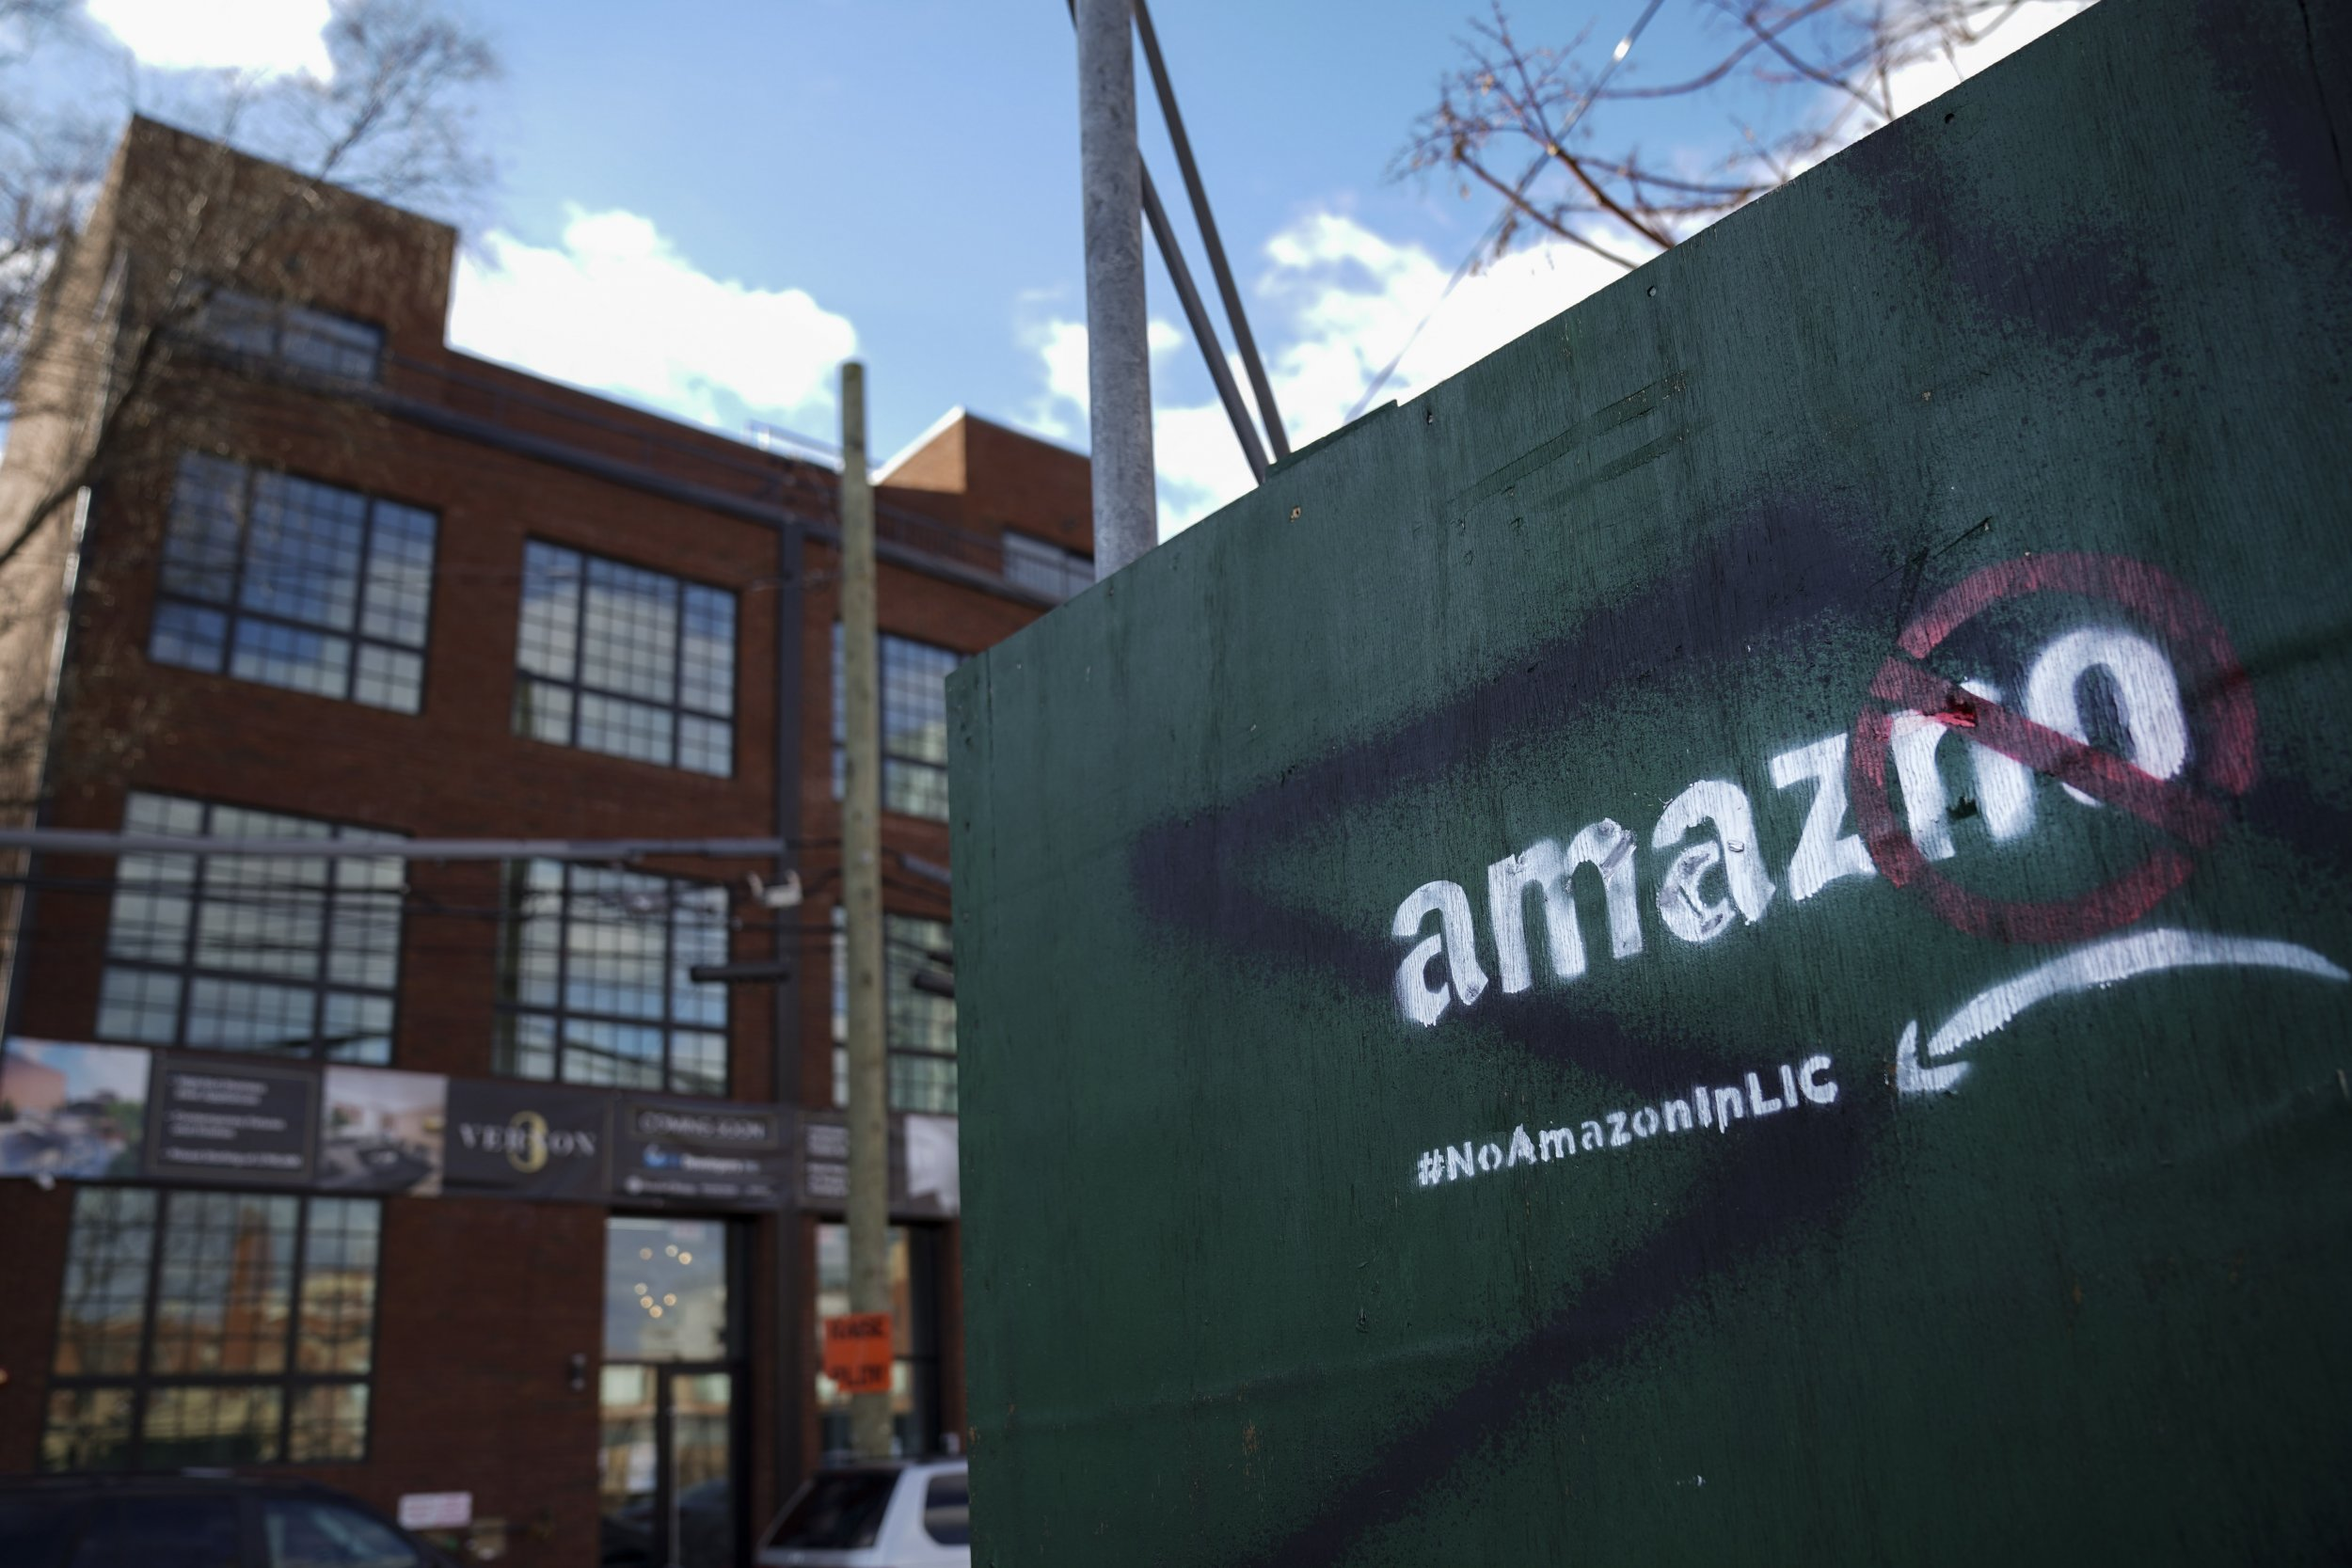 gentrification amazon